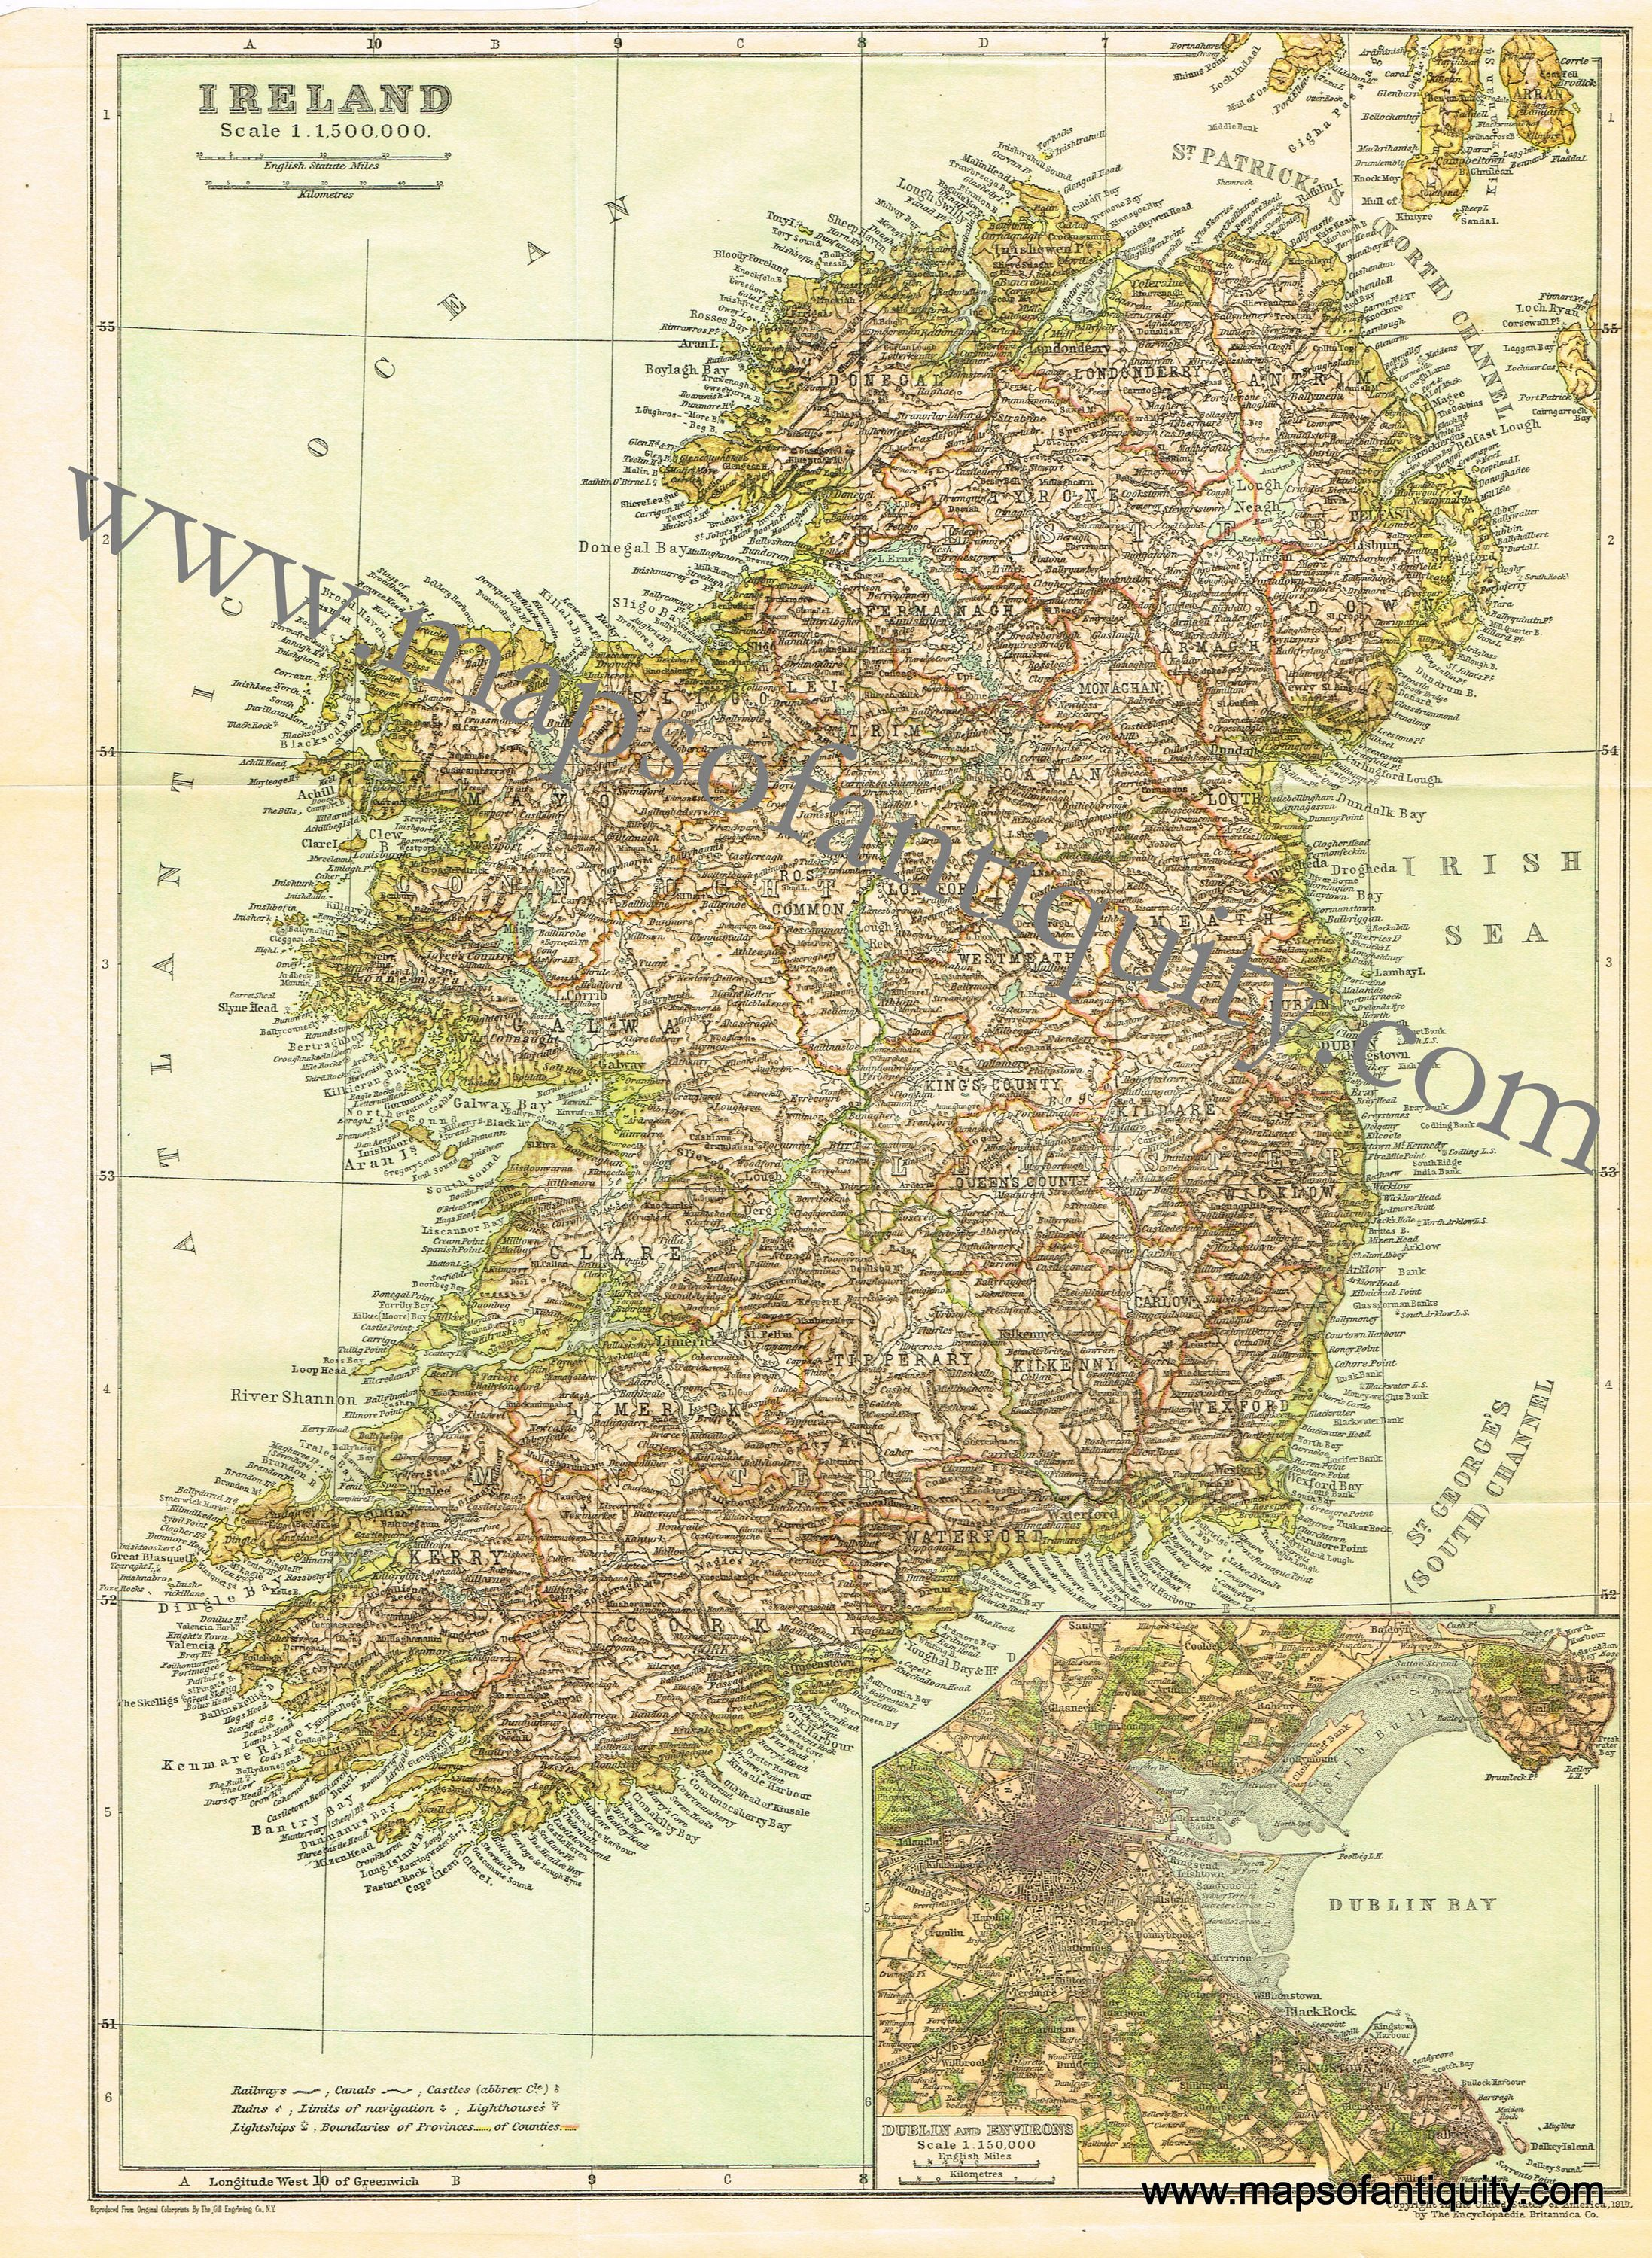 Lighthouses In Ireland Map.This 1910 Map Of Ireland Has An Inset Map Of Dublin And Includes